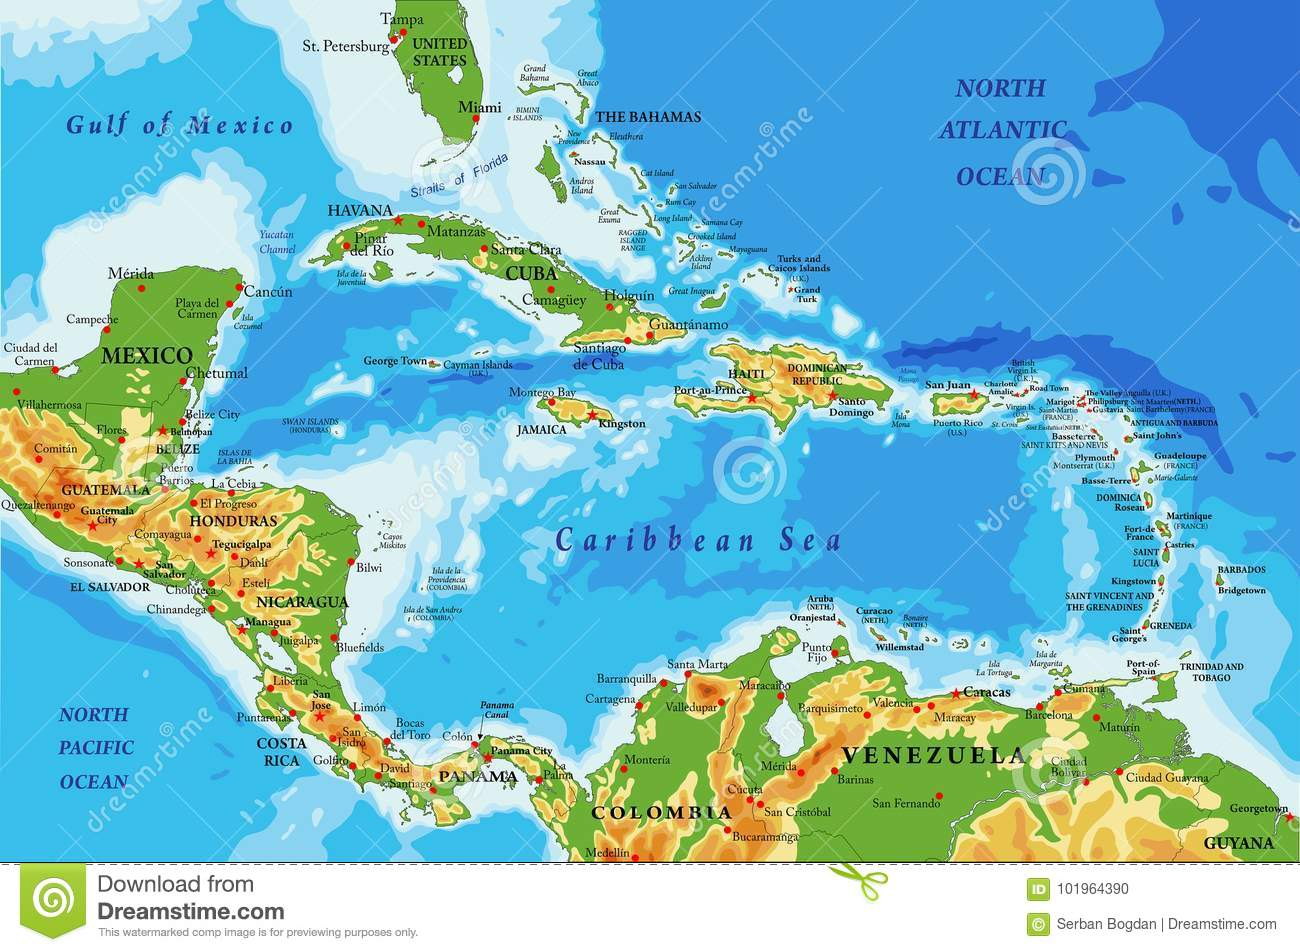 Central america and caribbean islands physical map stock vector download central america and caribbean islands physical map stock vector illustration of guyana florida publicscrutiny Choice Image